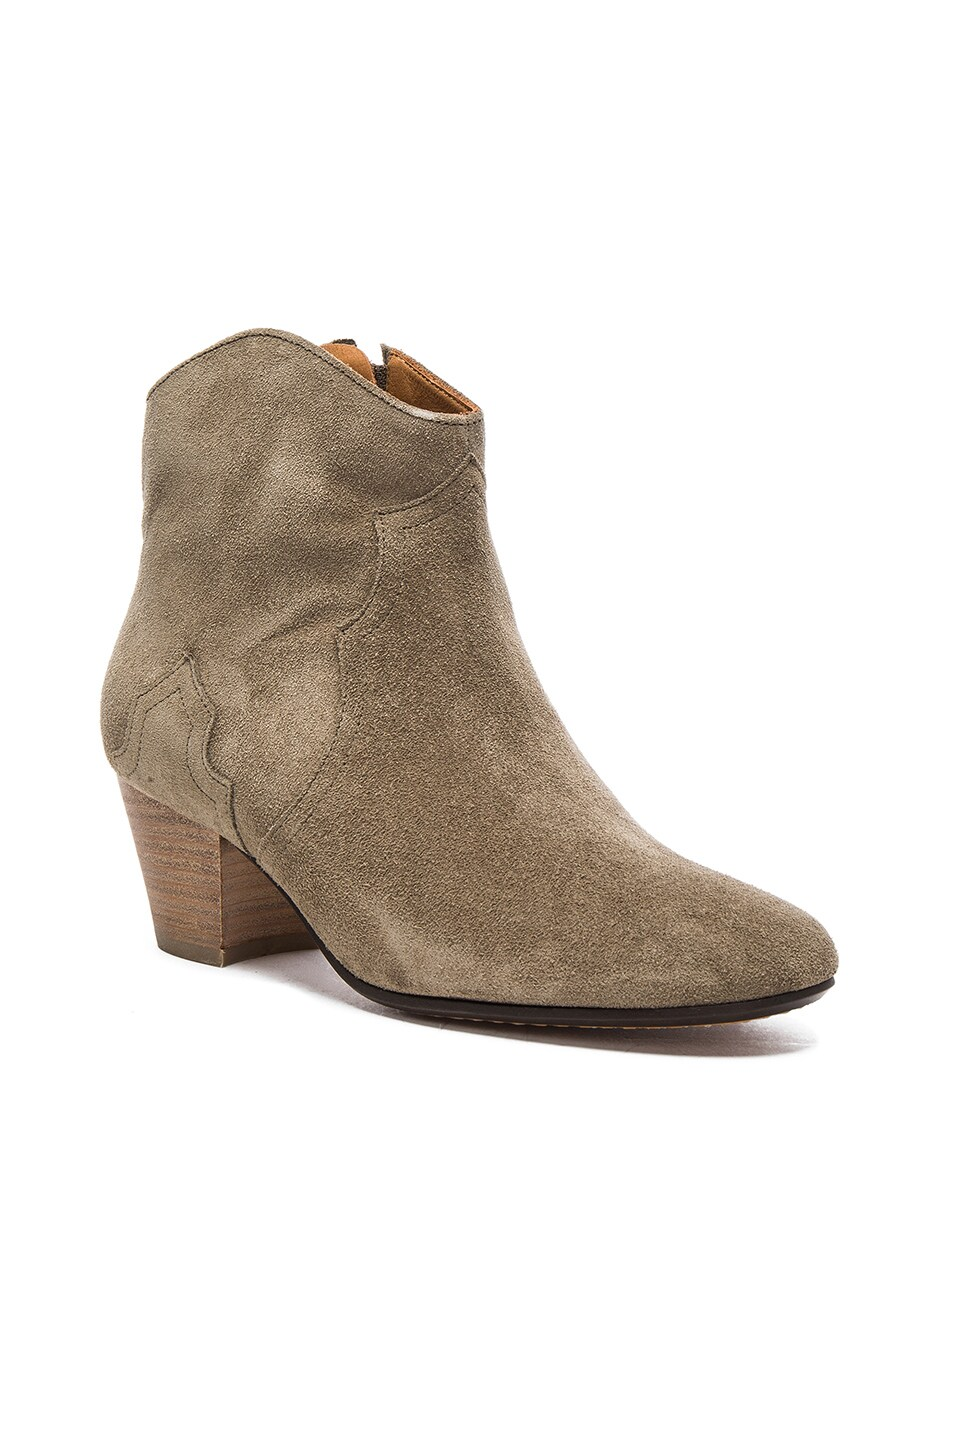 Image 2 of Isabel Marant Etoile Dicker Velvet Booties in Taupe